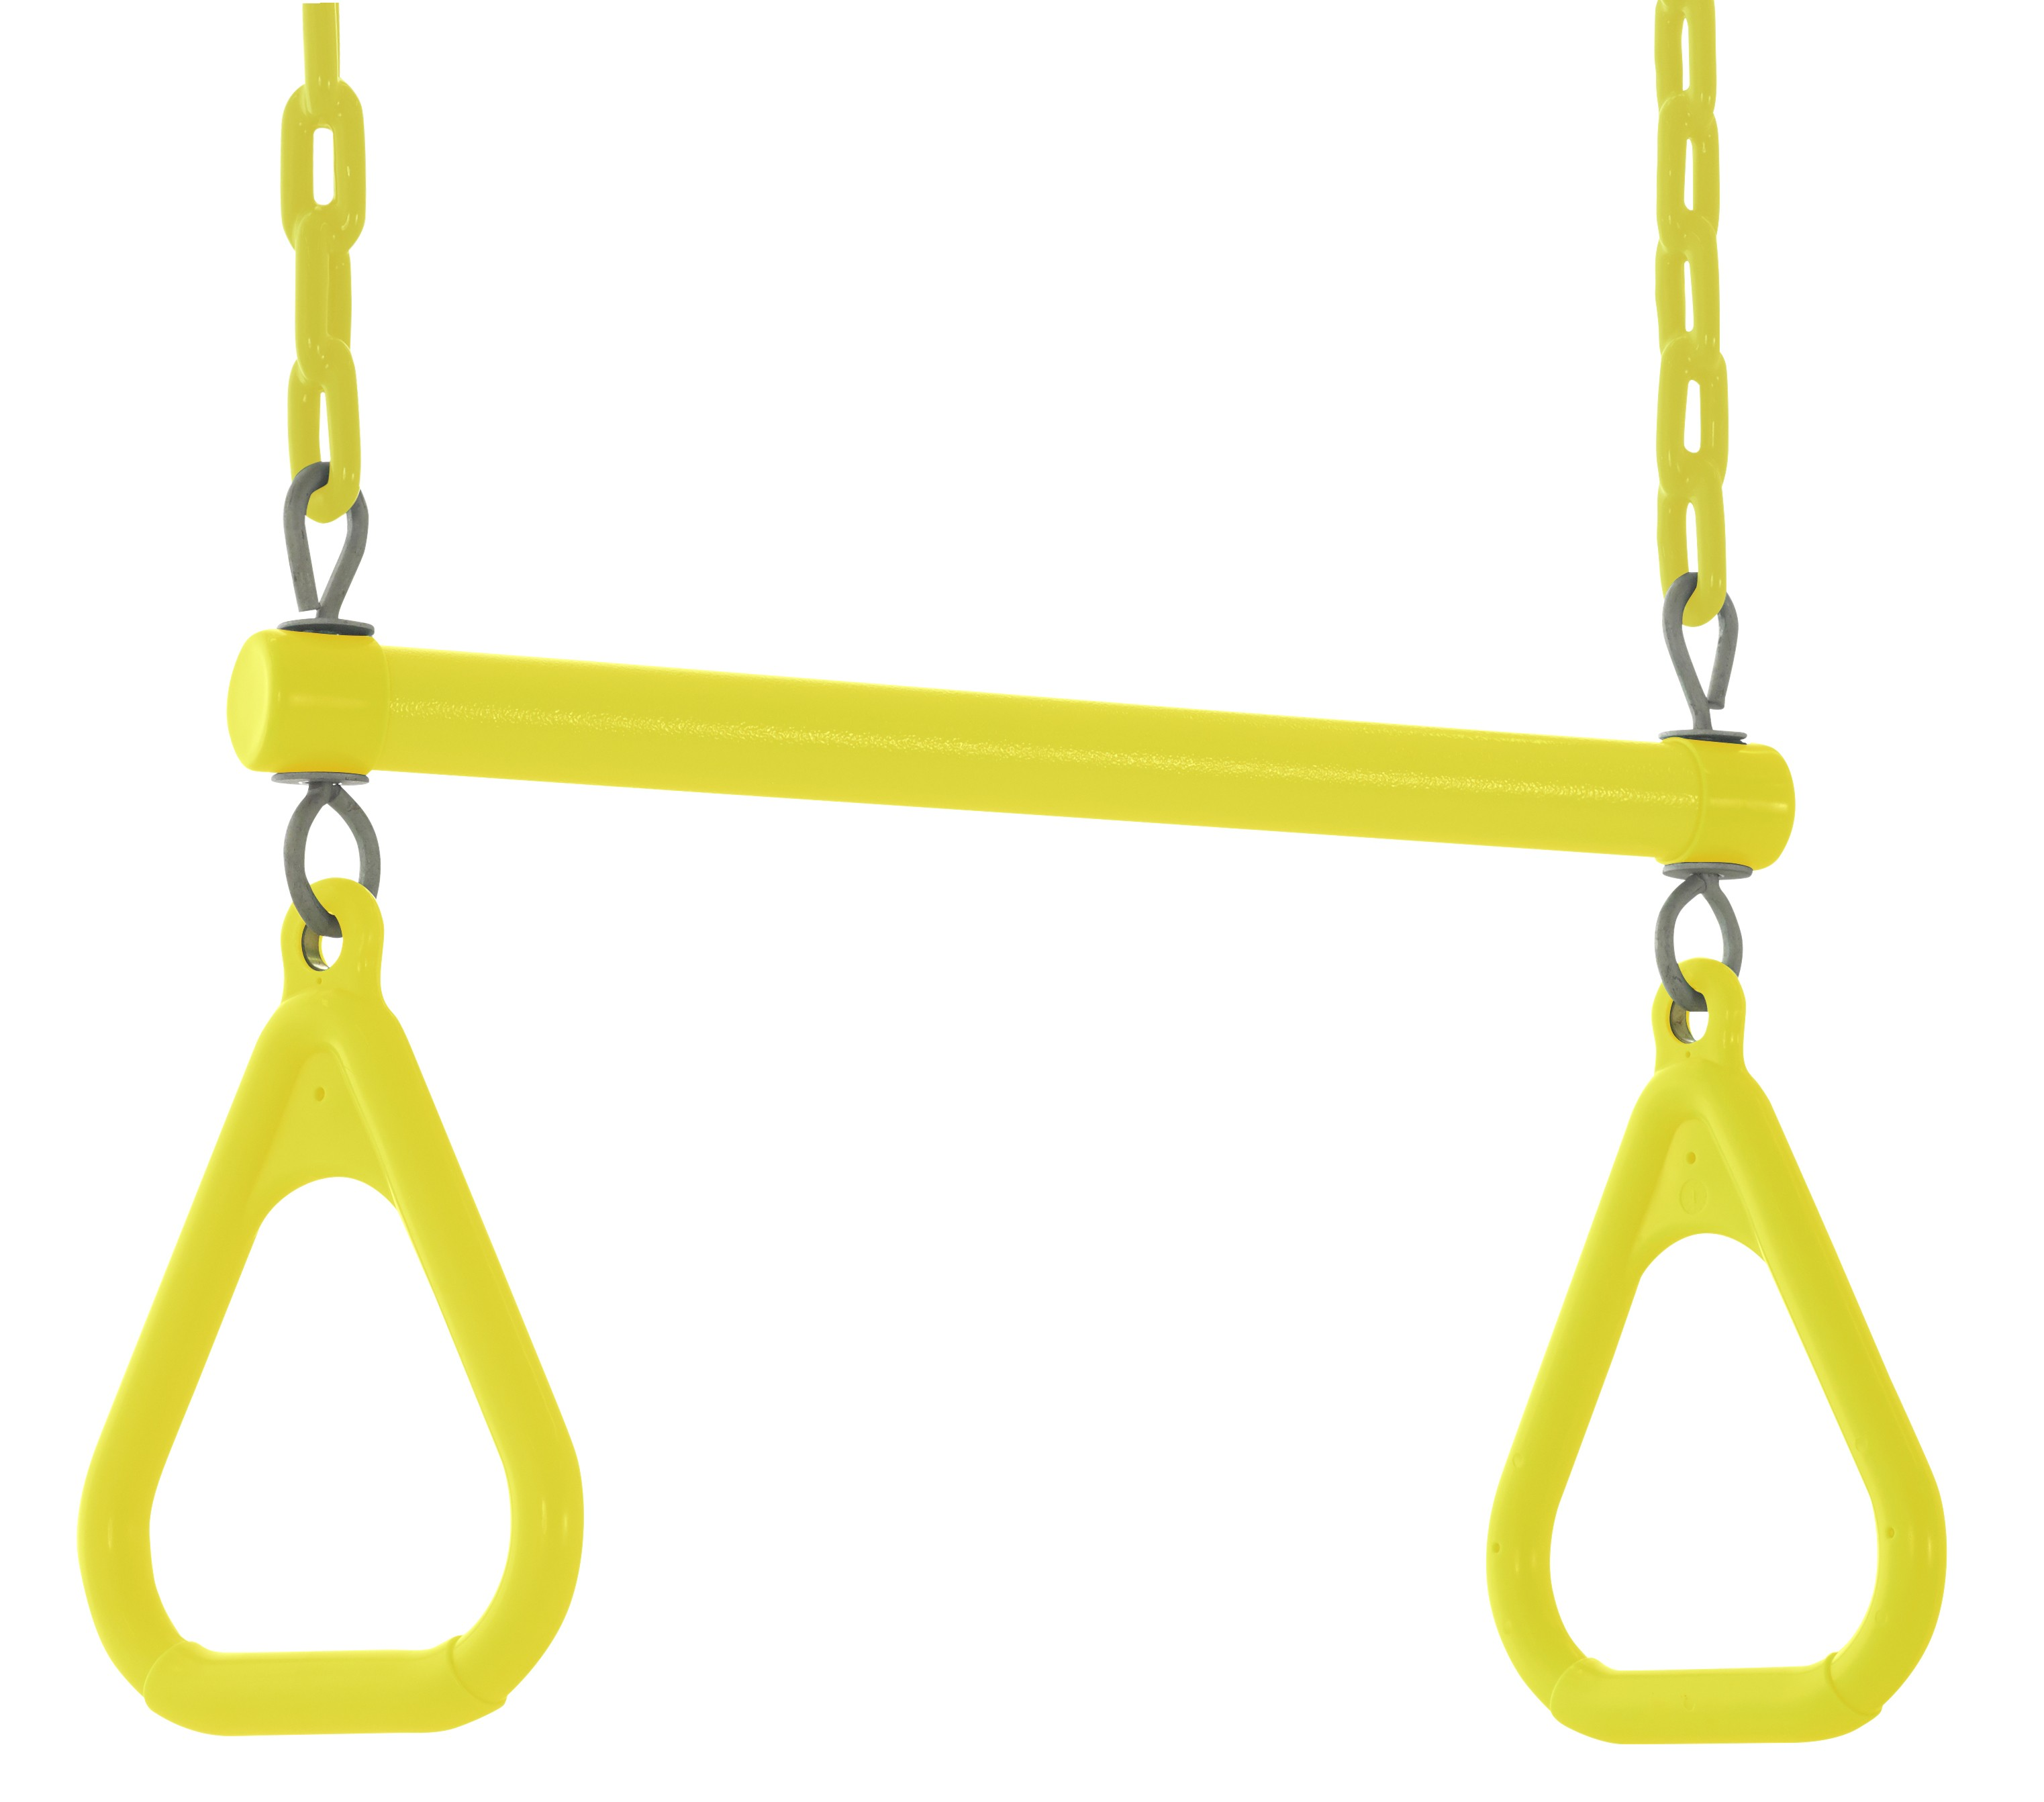 Swingan - Trapeze Swing Bar - Vinyl Coated Chain - Fully Assembled - Yellow